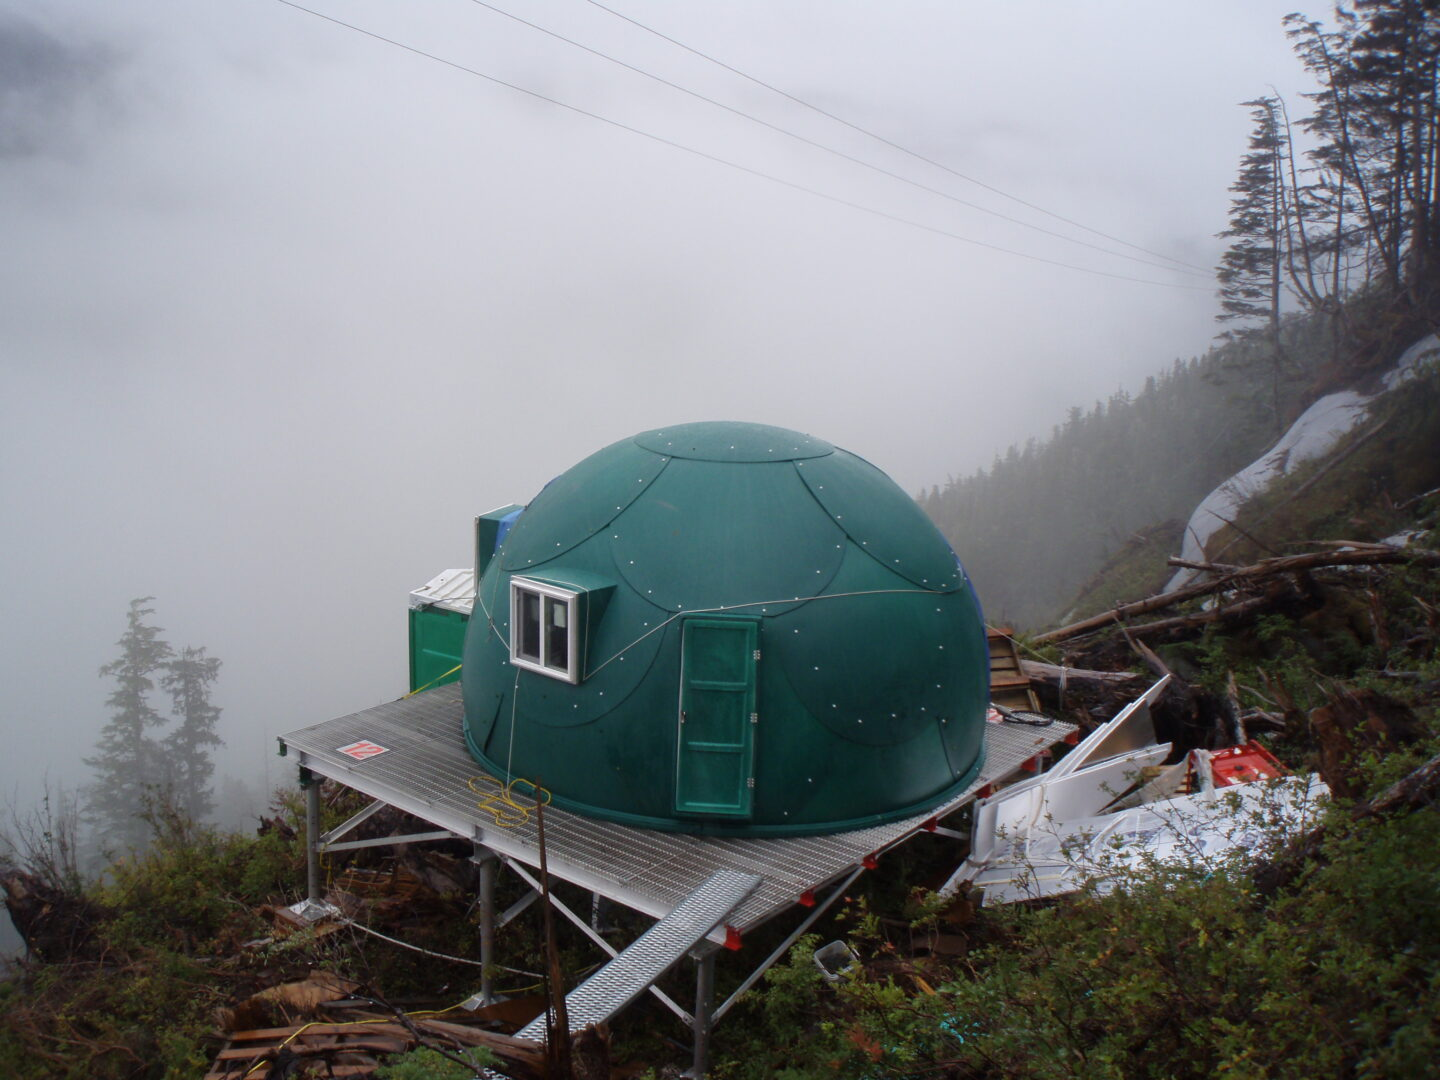 Green tiny house or safety shelter from InterShelter Inc.